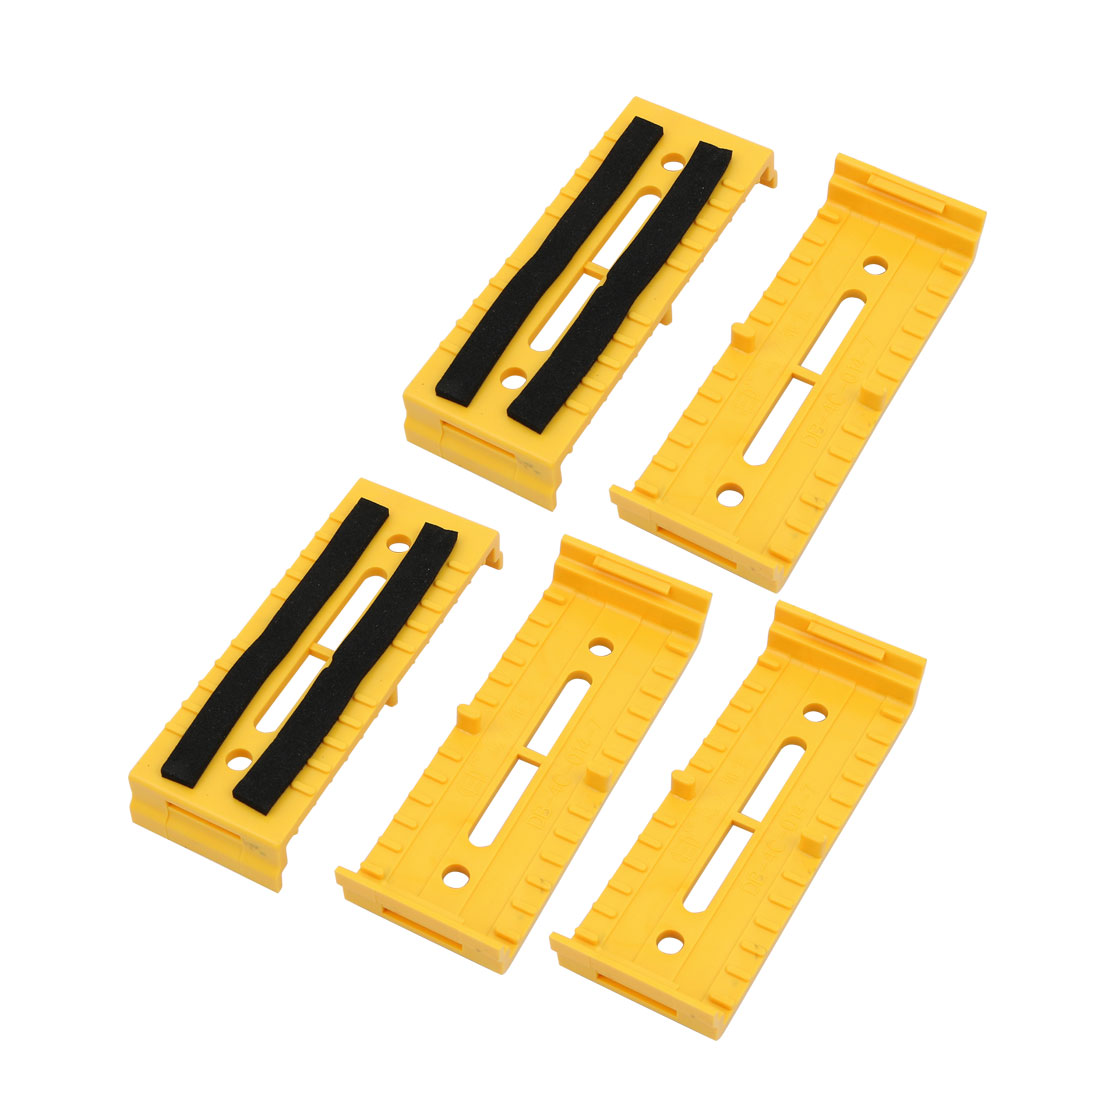 5 Pcs ABS 110mmx40mmx15mm Cable Line Holder Wire Organizer Yellow for Office